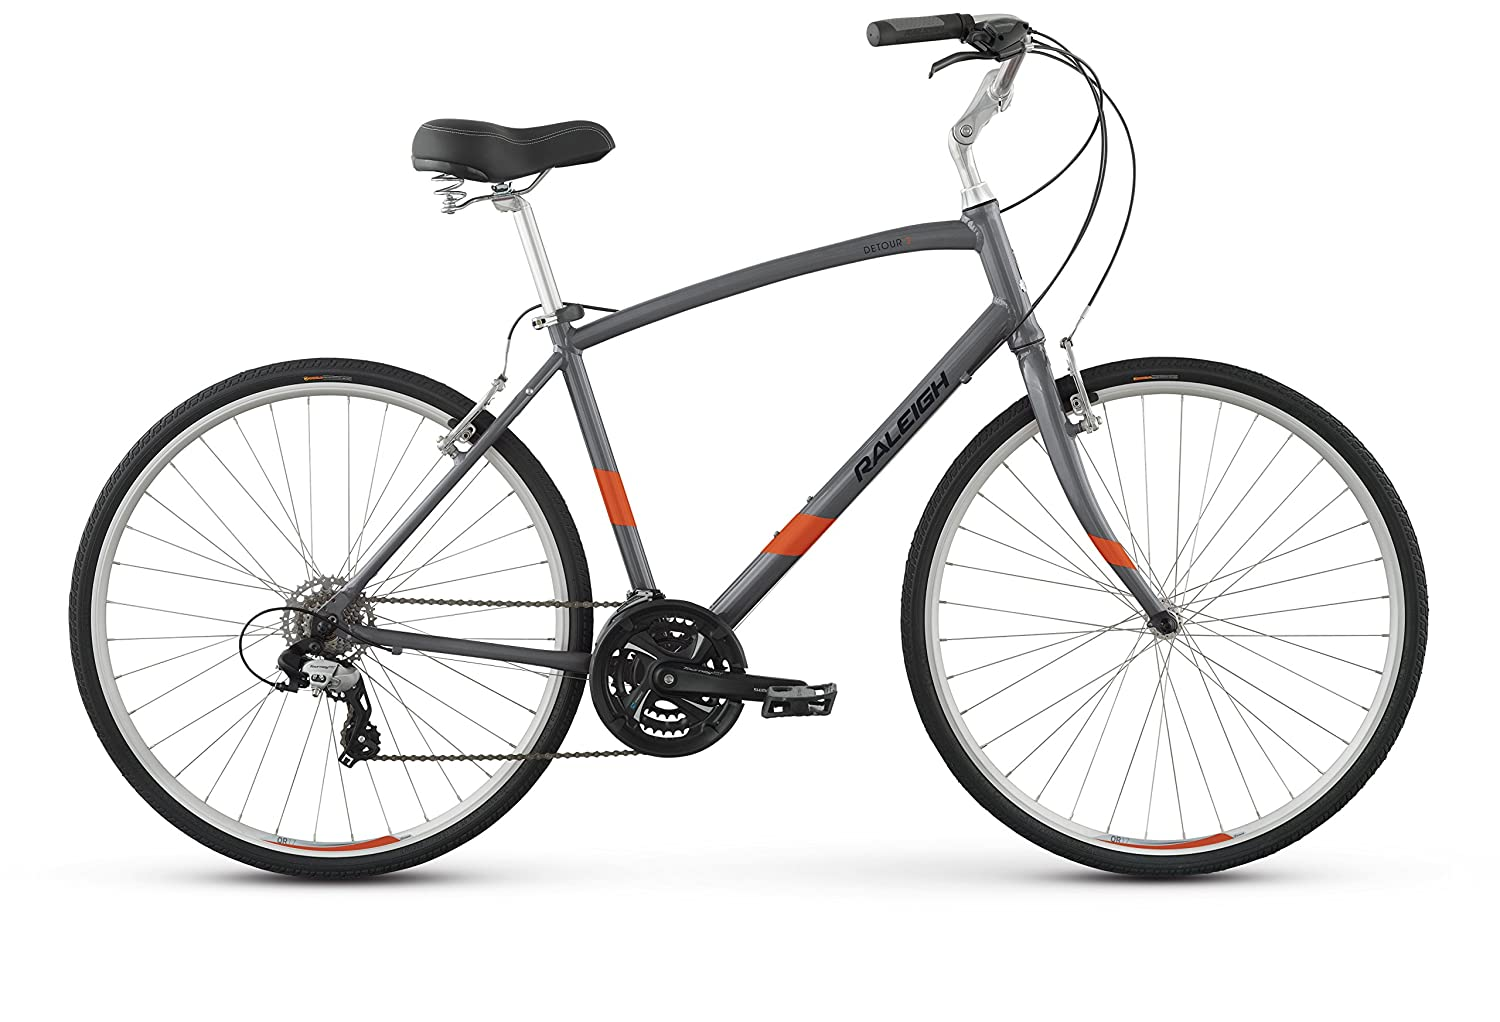 comfort us p series cycles frame mountain gigabike isoshallow bikes big pricing complete and full for contact tall suspension zinn bike bicycles comforter